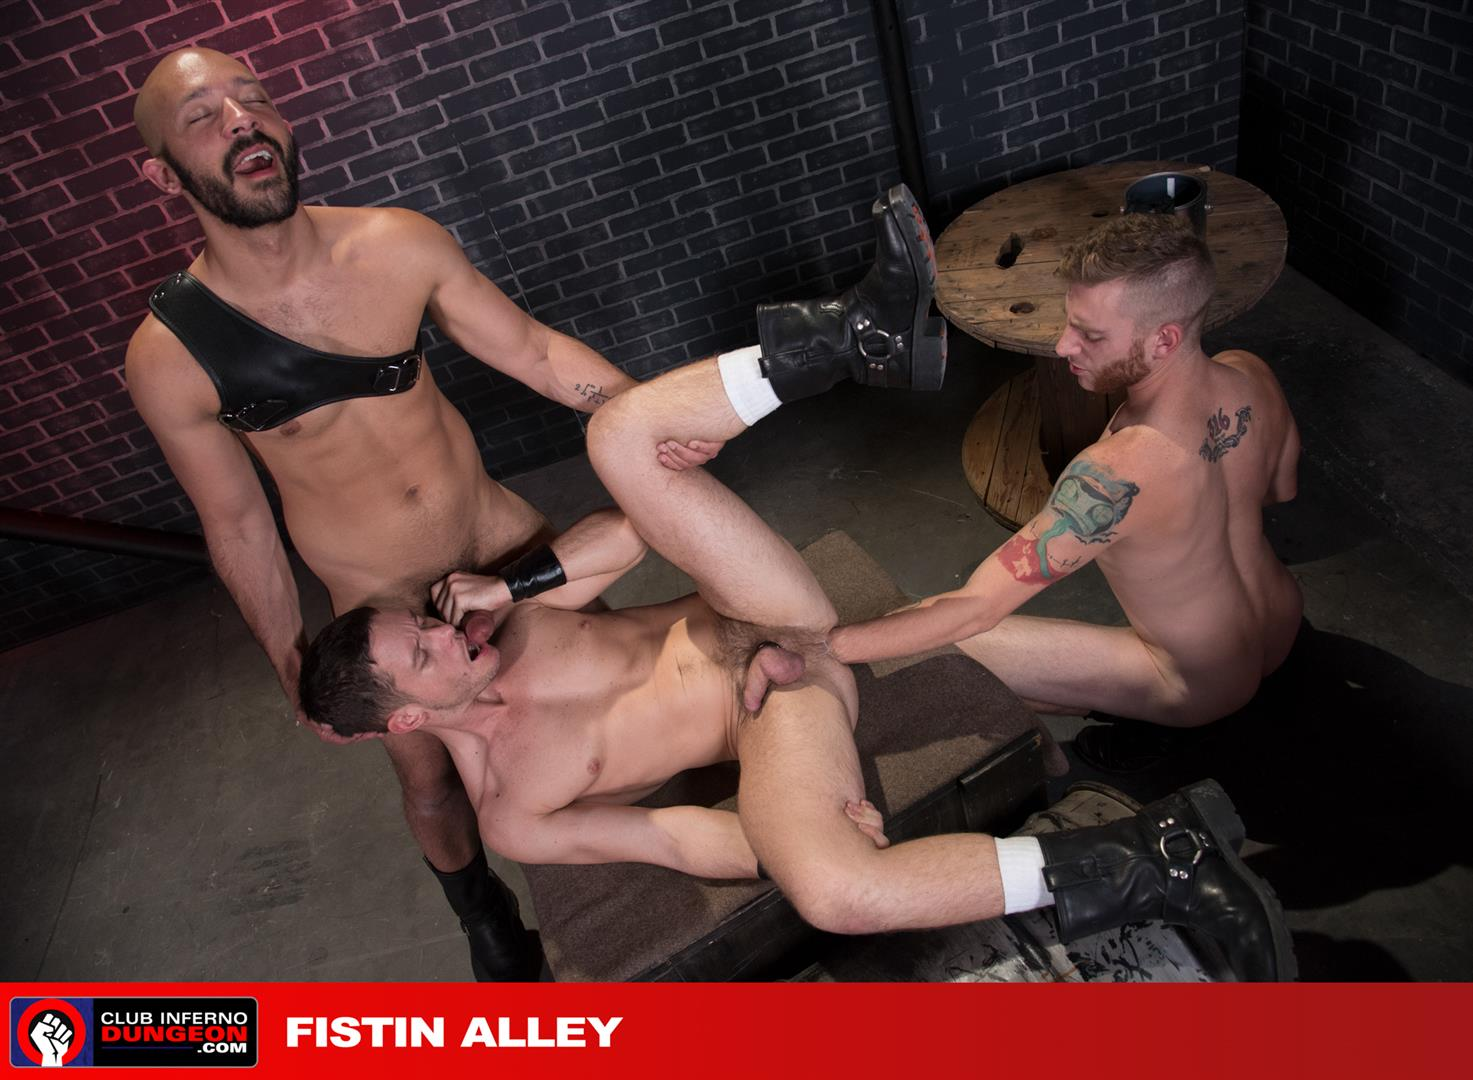 Club-Inferno-Dungeon-Sebastian-Keys-and-Dylan-Strokes-and-Ashley-Ryder-Fisting-15 Sebastian Keys and Ashley Ryder Get Their Asses Fisted